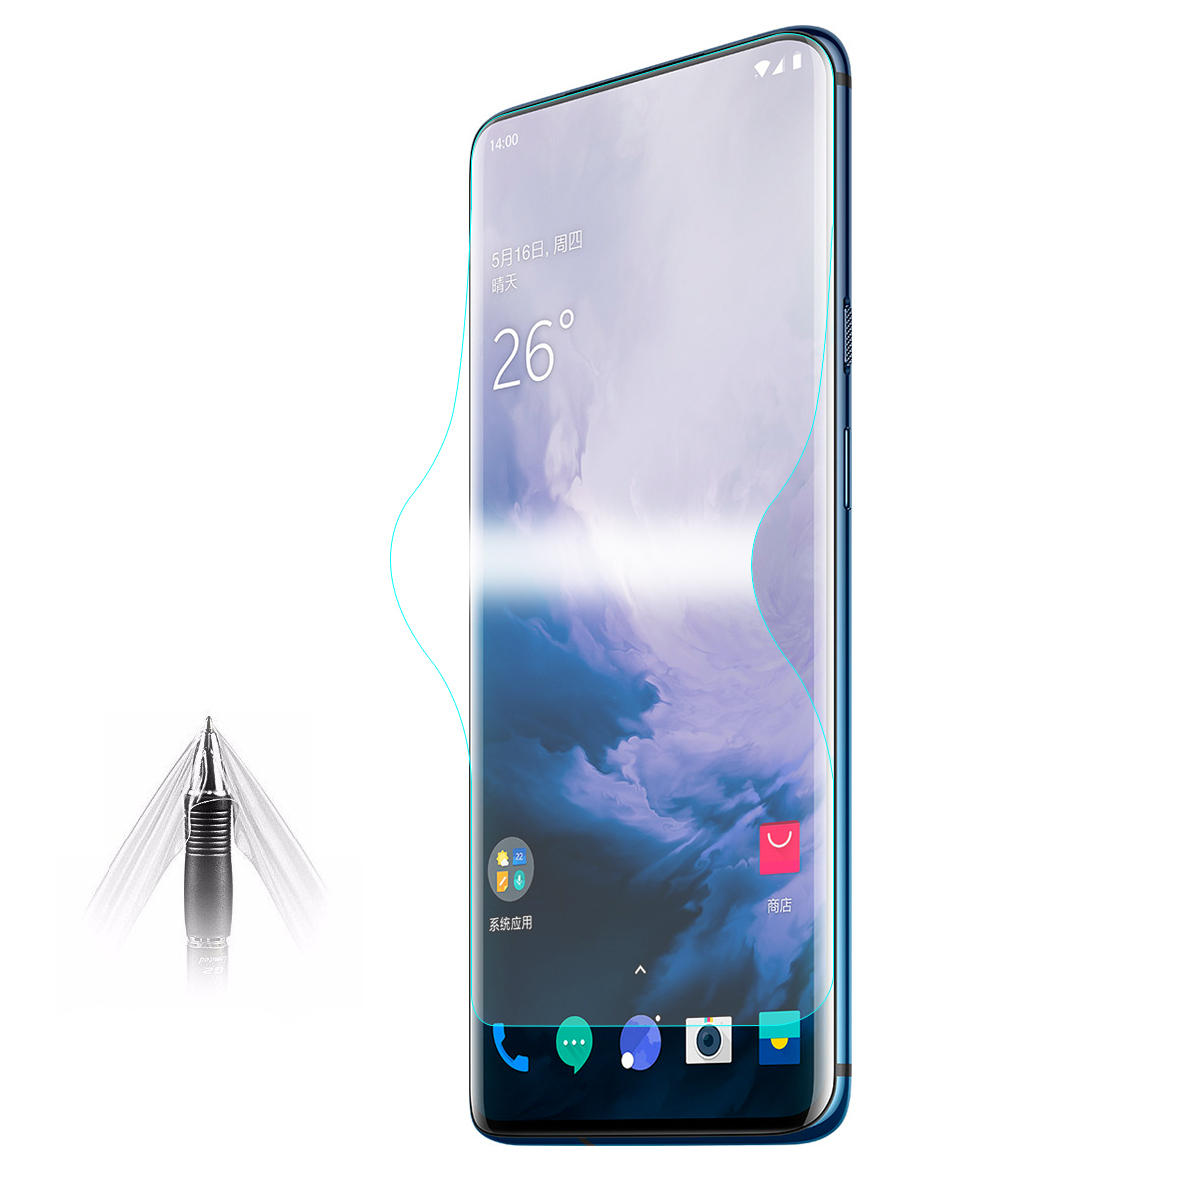 Enkay Hydrogel TPU 3D Full Curved Edge Self-healing Screen Cover Screen Protector For OnePlus 7 Pro